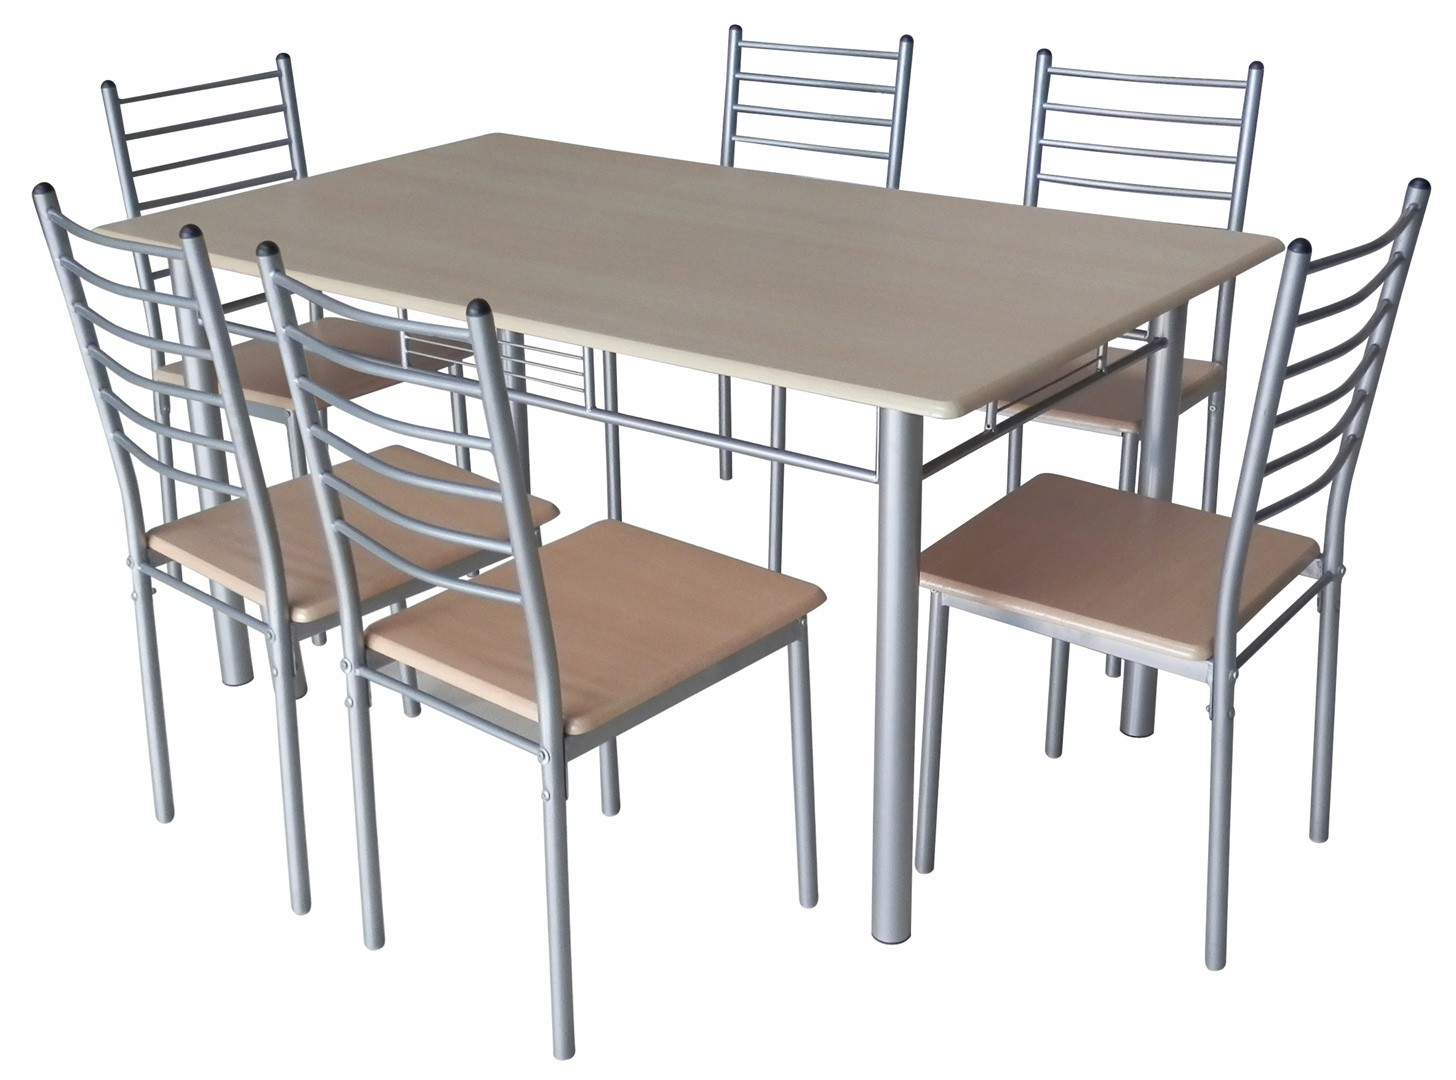 Ensemble table et chaises de cuisine but chaise id es de d coration de ma - Table cuisine chaises ...